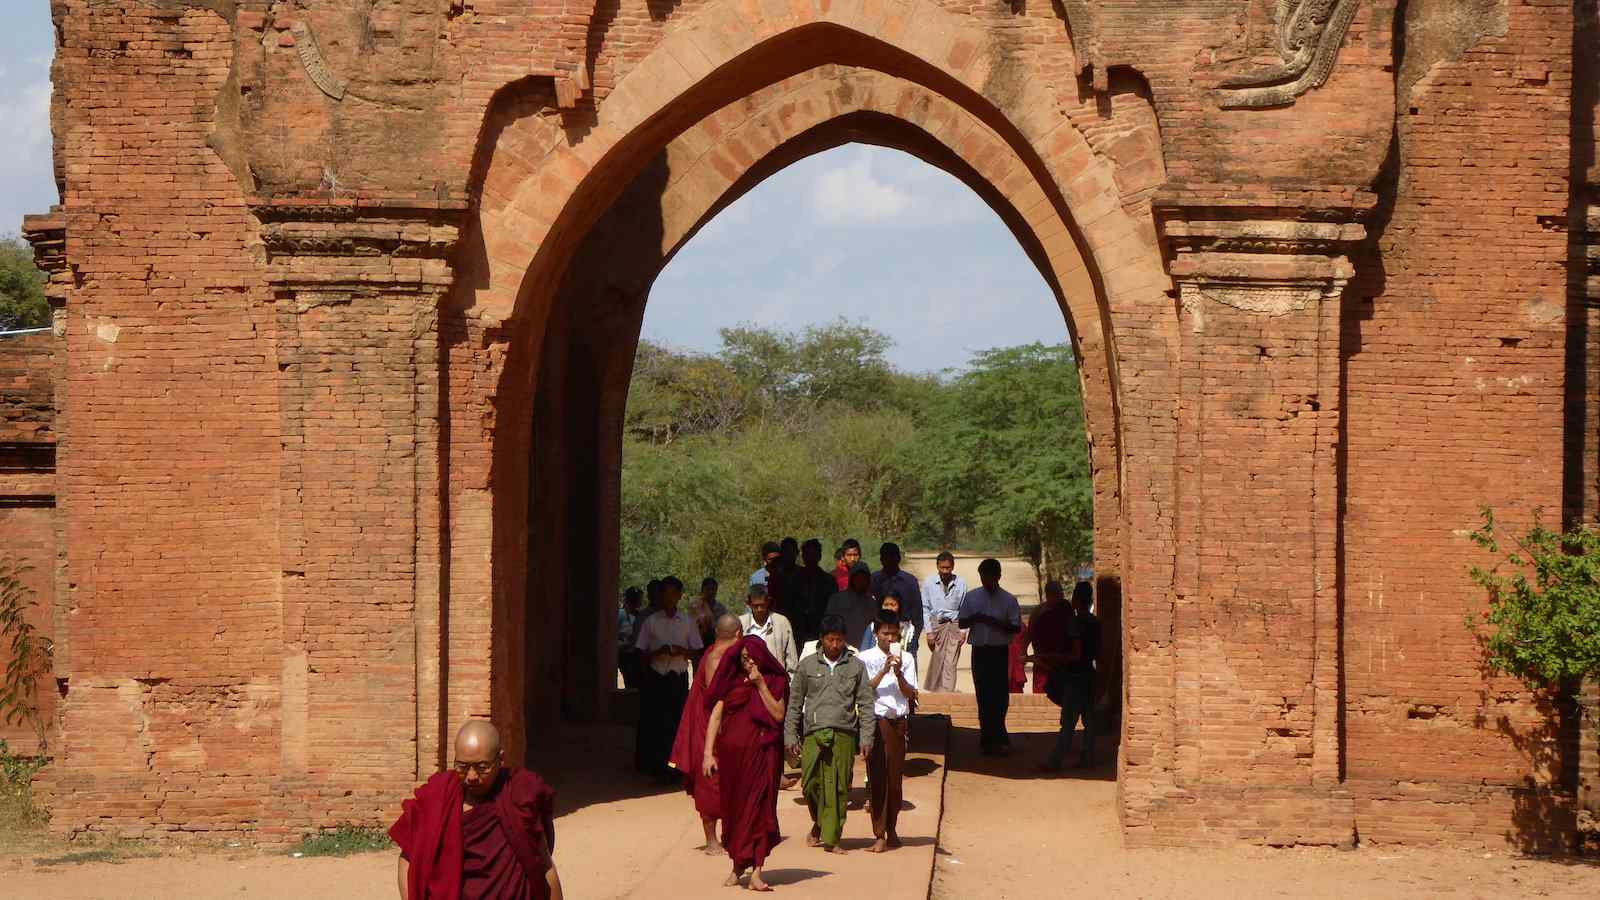 Dhammayangyi Pahto is one of the best temples in Bagan to see both sunrise and sunset